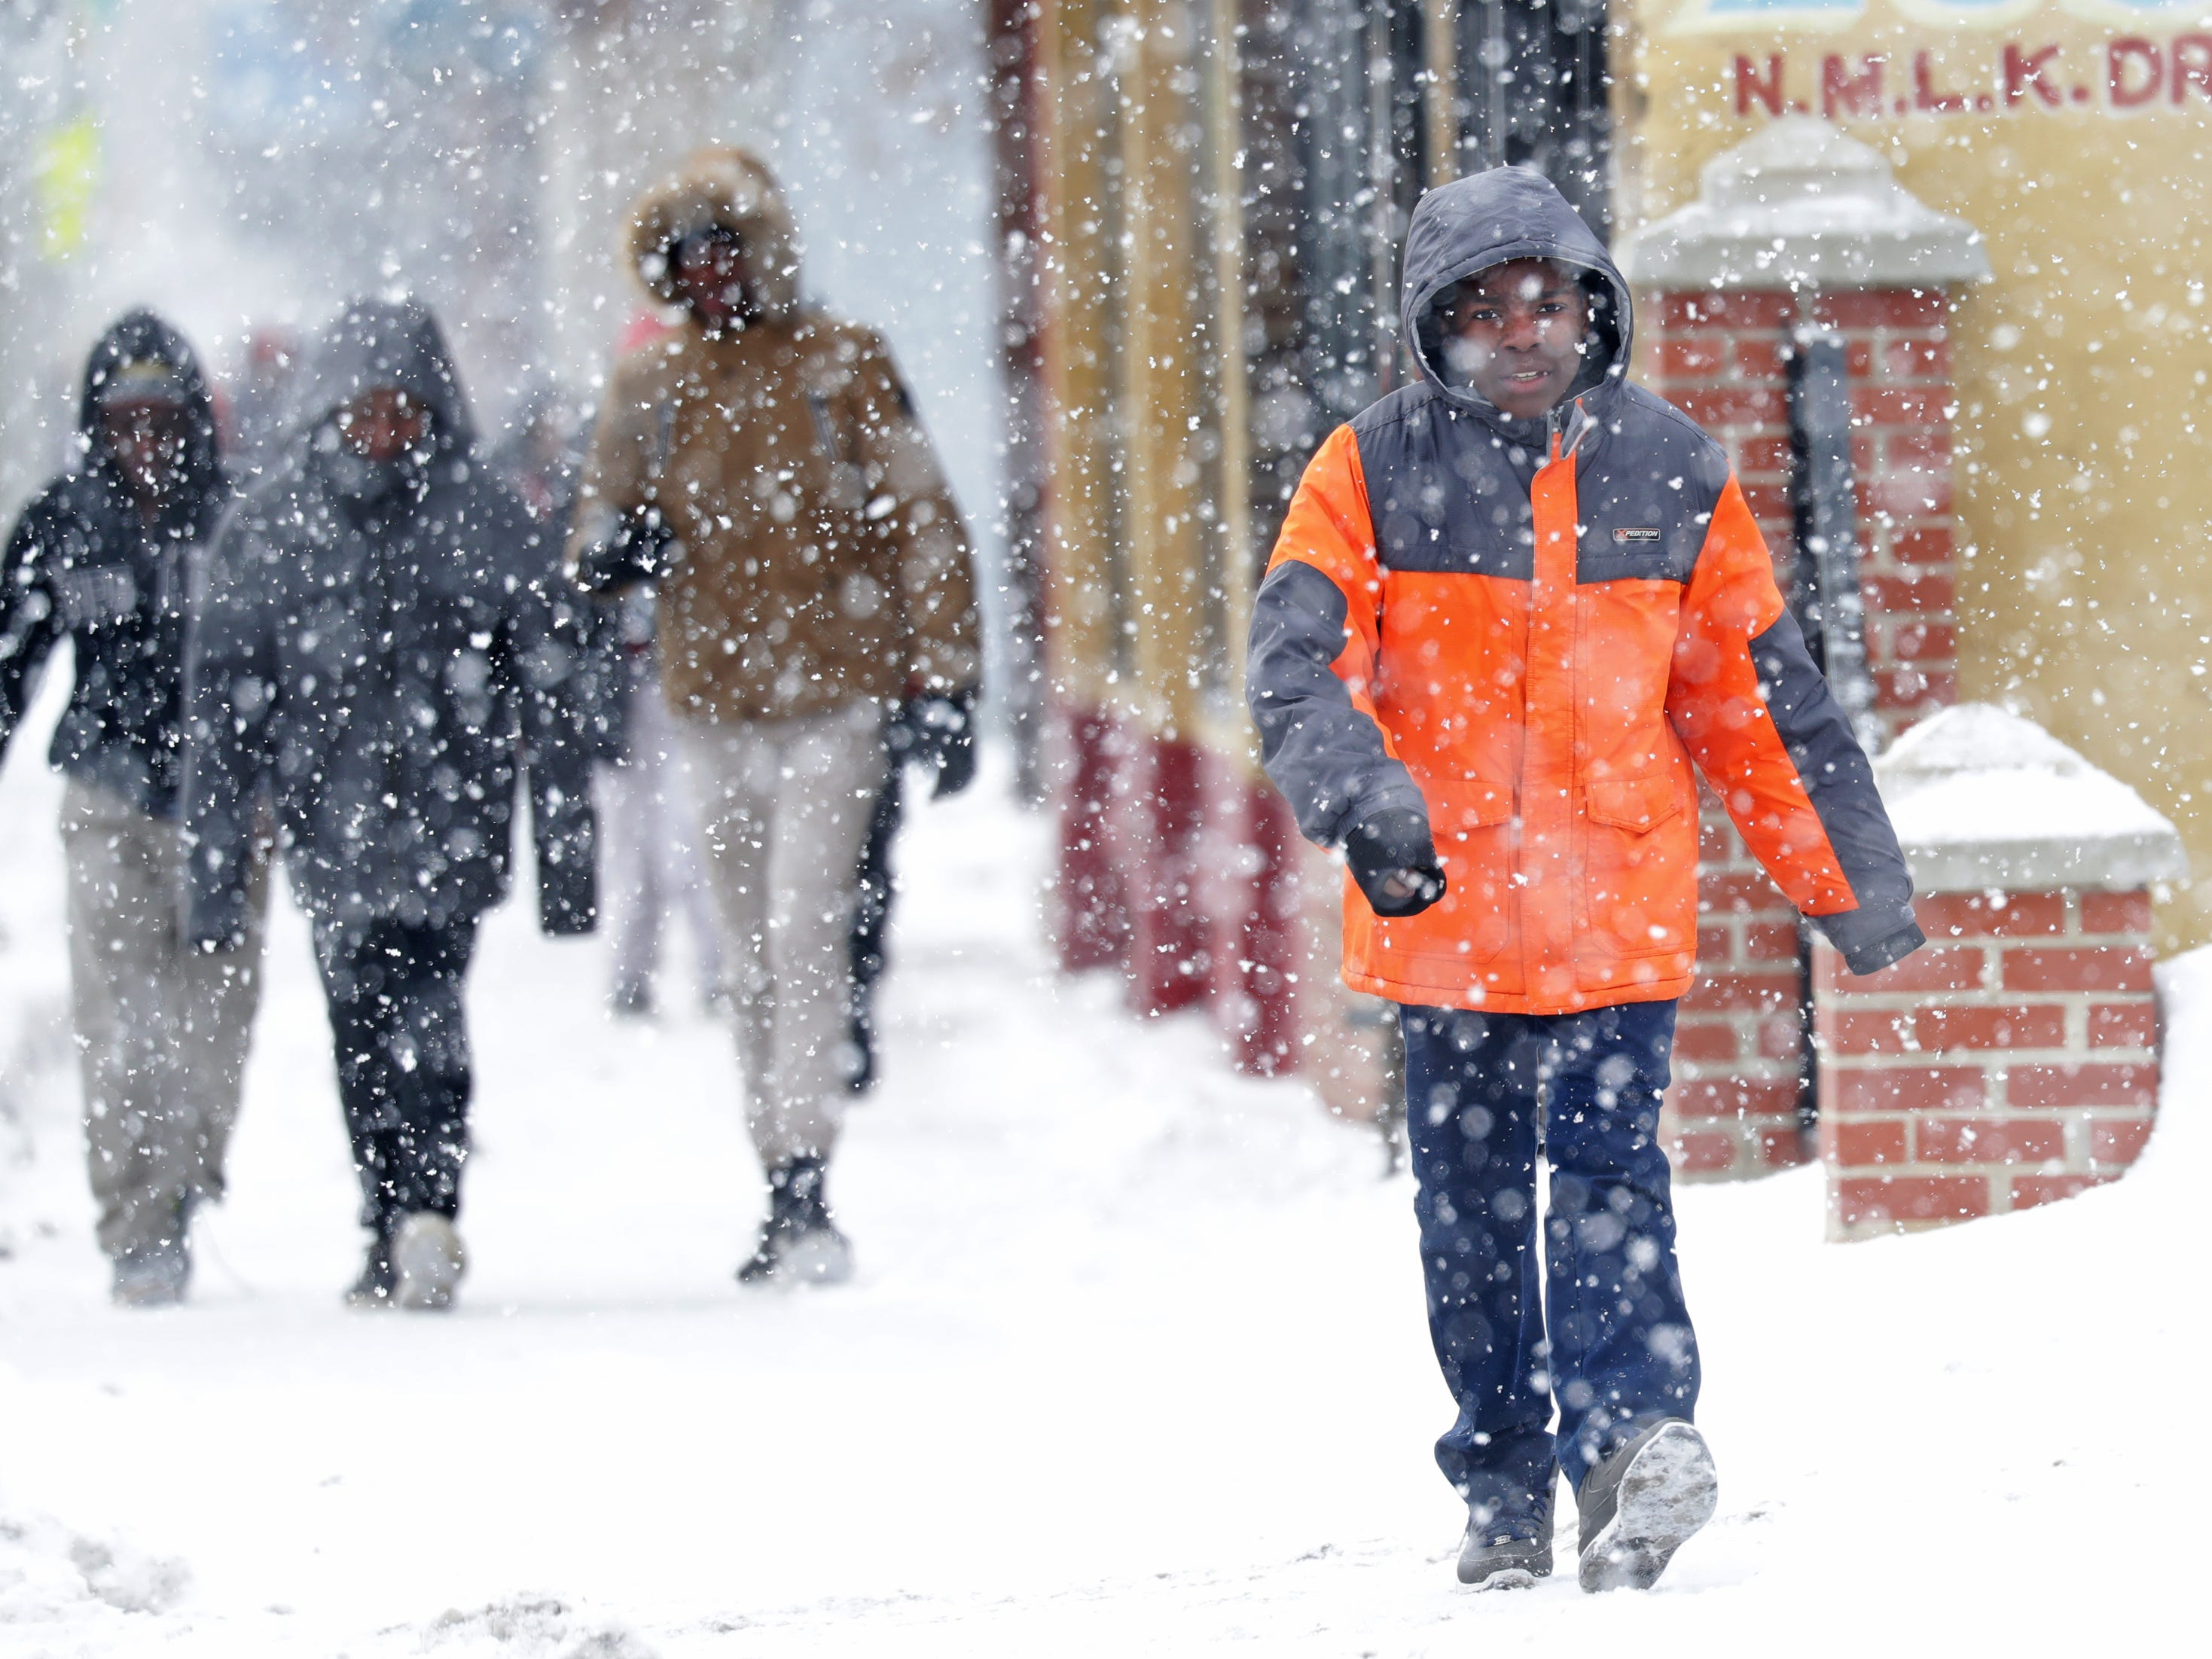 Clara Mohammed School student Sheikhnuur Abu, 12, walks with his class  through the falling snow to the Martin Luther King Library for a King event on West Locust Street in Milwaukee.